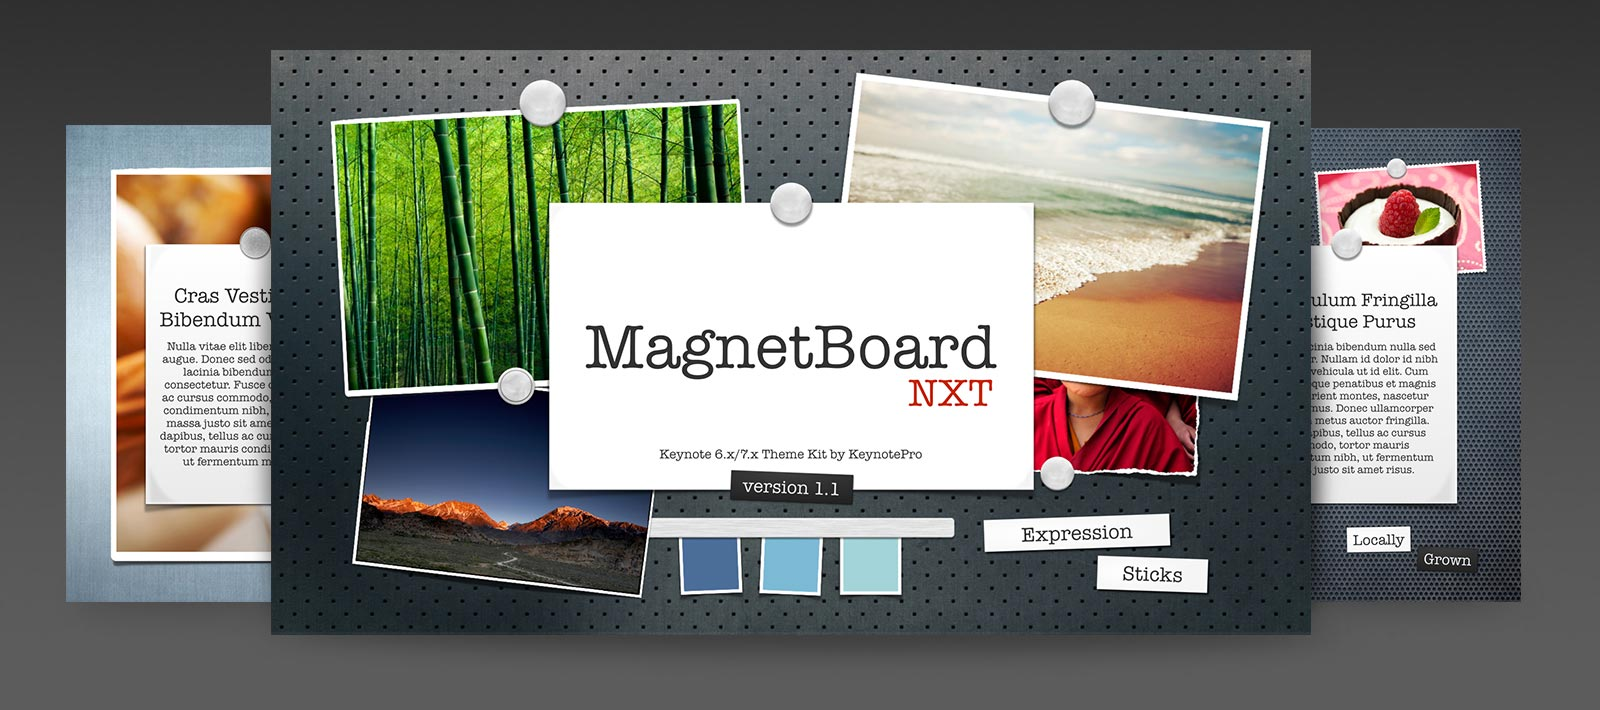 MagnetBoard NXT Version 1.1 Preview